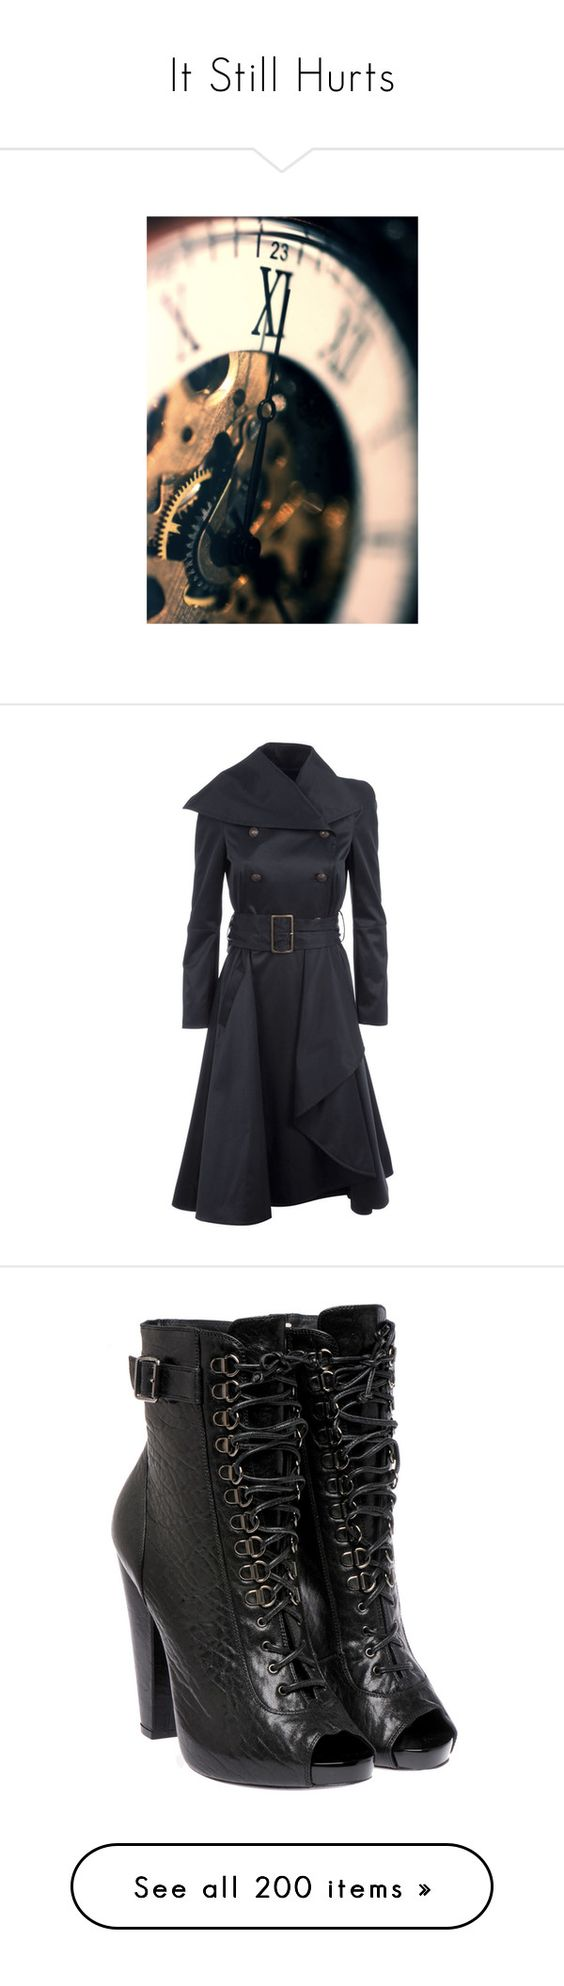 """""""It Still Hurts"""" by amber-daylight ❤ liked on Polyvore featuring outerwear, coats, jackets, dresses, casacos, coats & jackets, women, waterfall trench coat, double breasted coat and waterfall coat"""